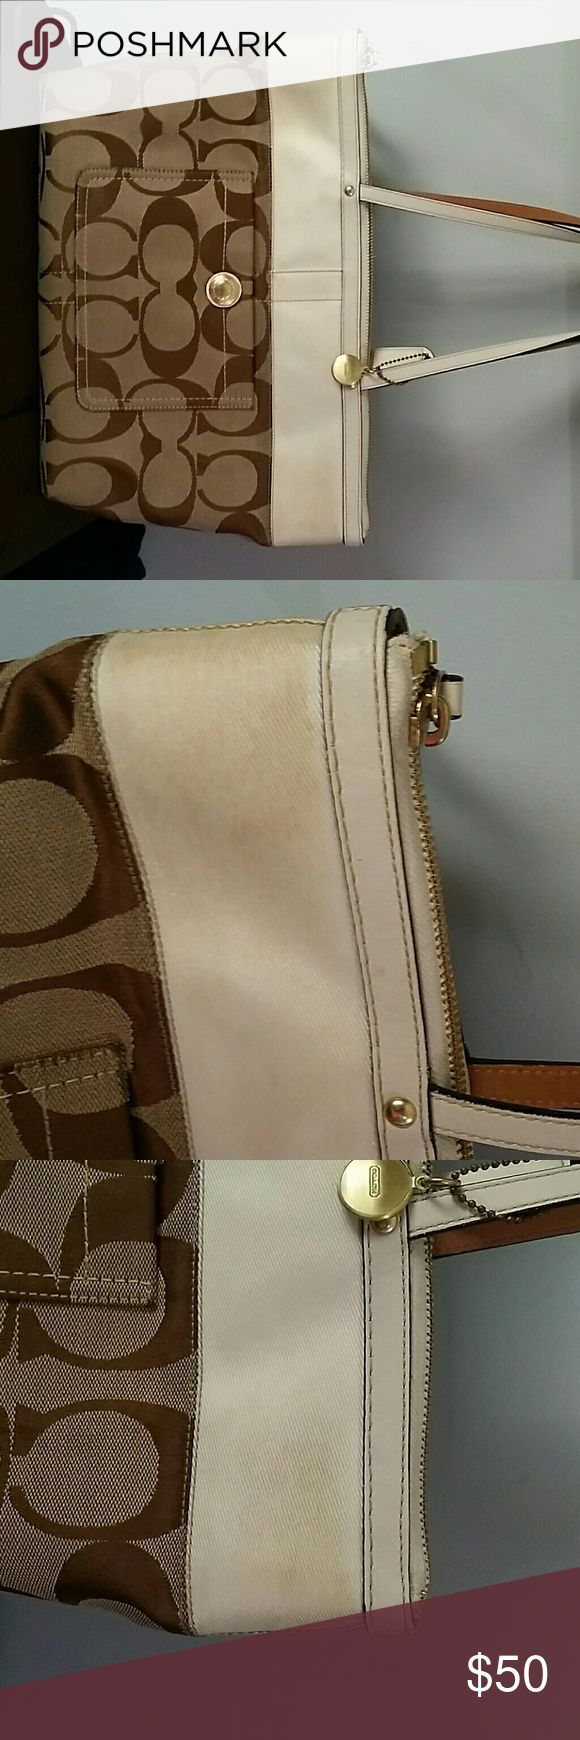 Coach monogram cream stripe shoulder bag used Preowned Coach shoulder bag. Monogram canvass. Light beige stripe is soiled. Bottom has some stain. Not sure if those can be cleaned but I'm leaving that up to a new owner. Inside very nice and clean. Coach Bags Shoulder Bags